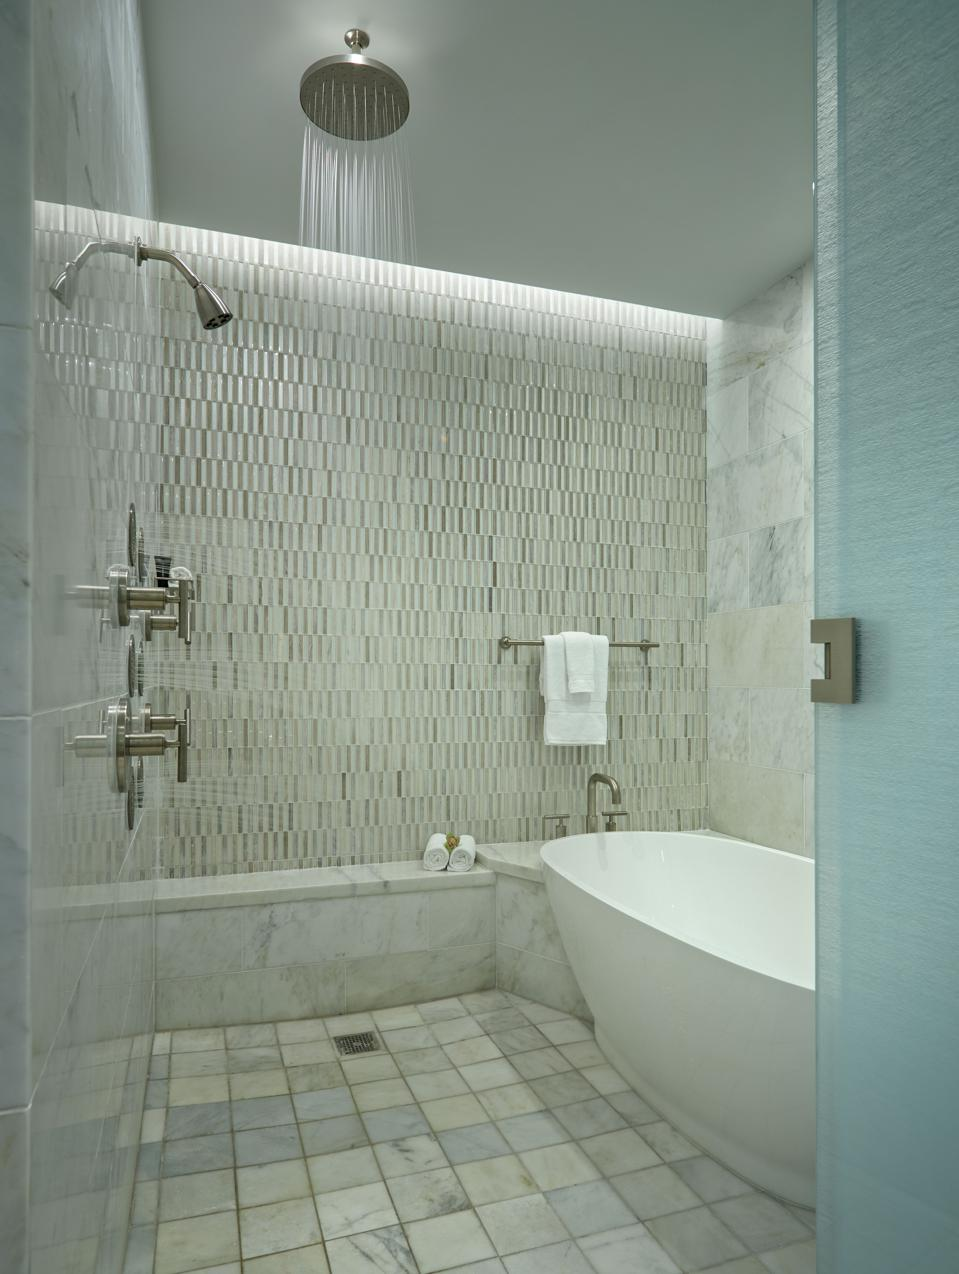 A shower in a hotel that has no door attached to it.